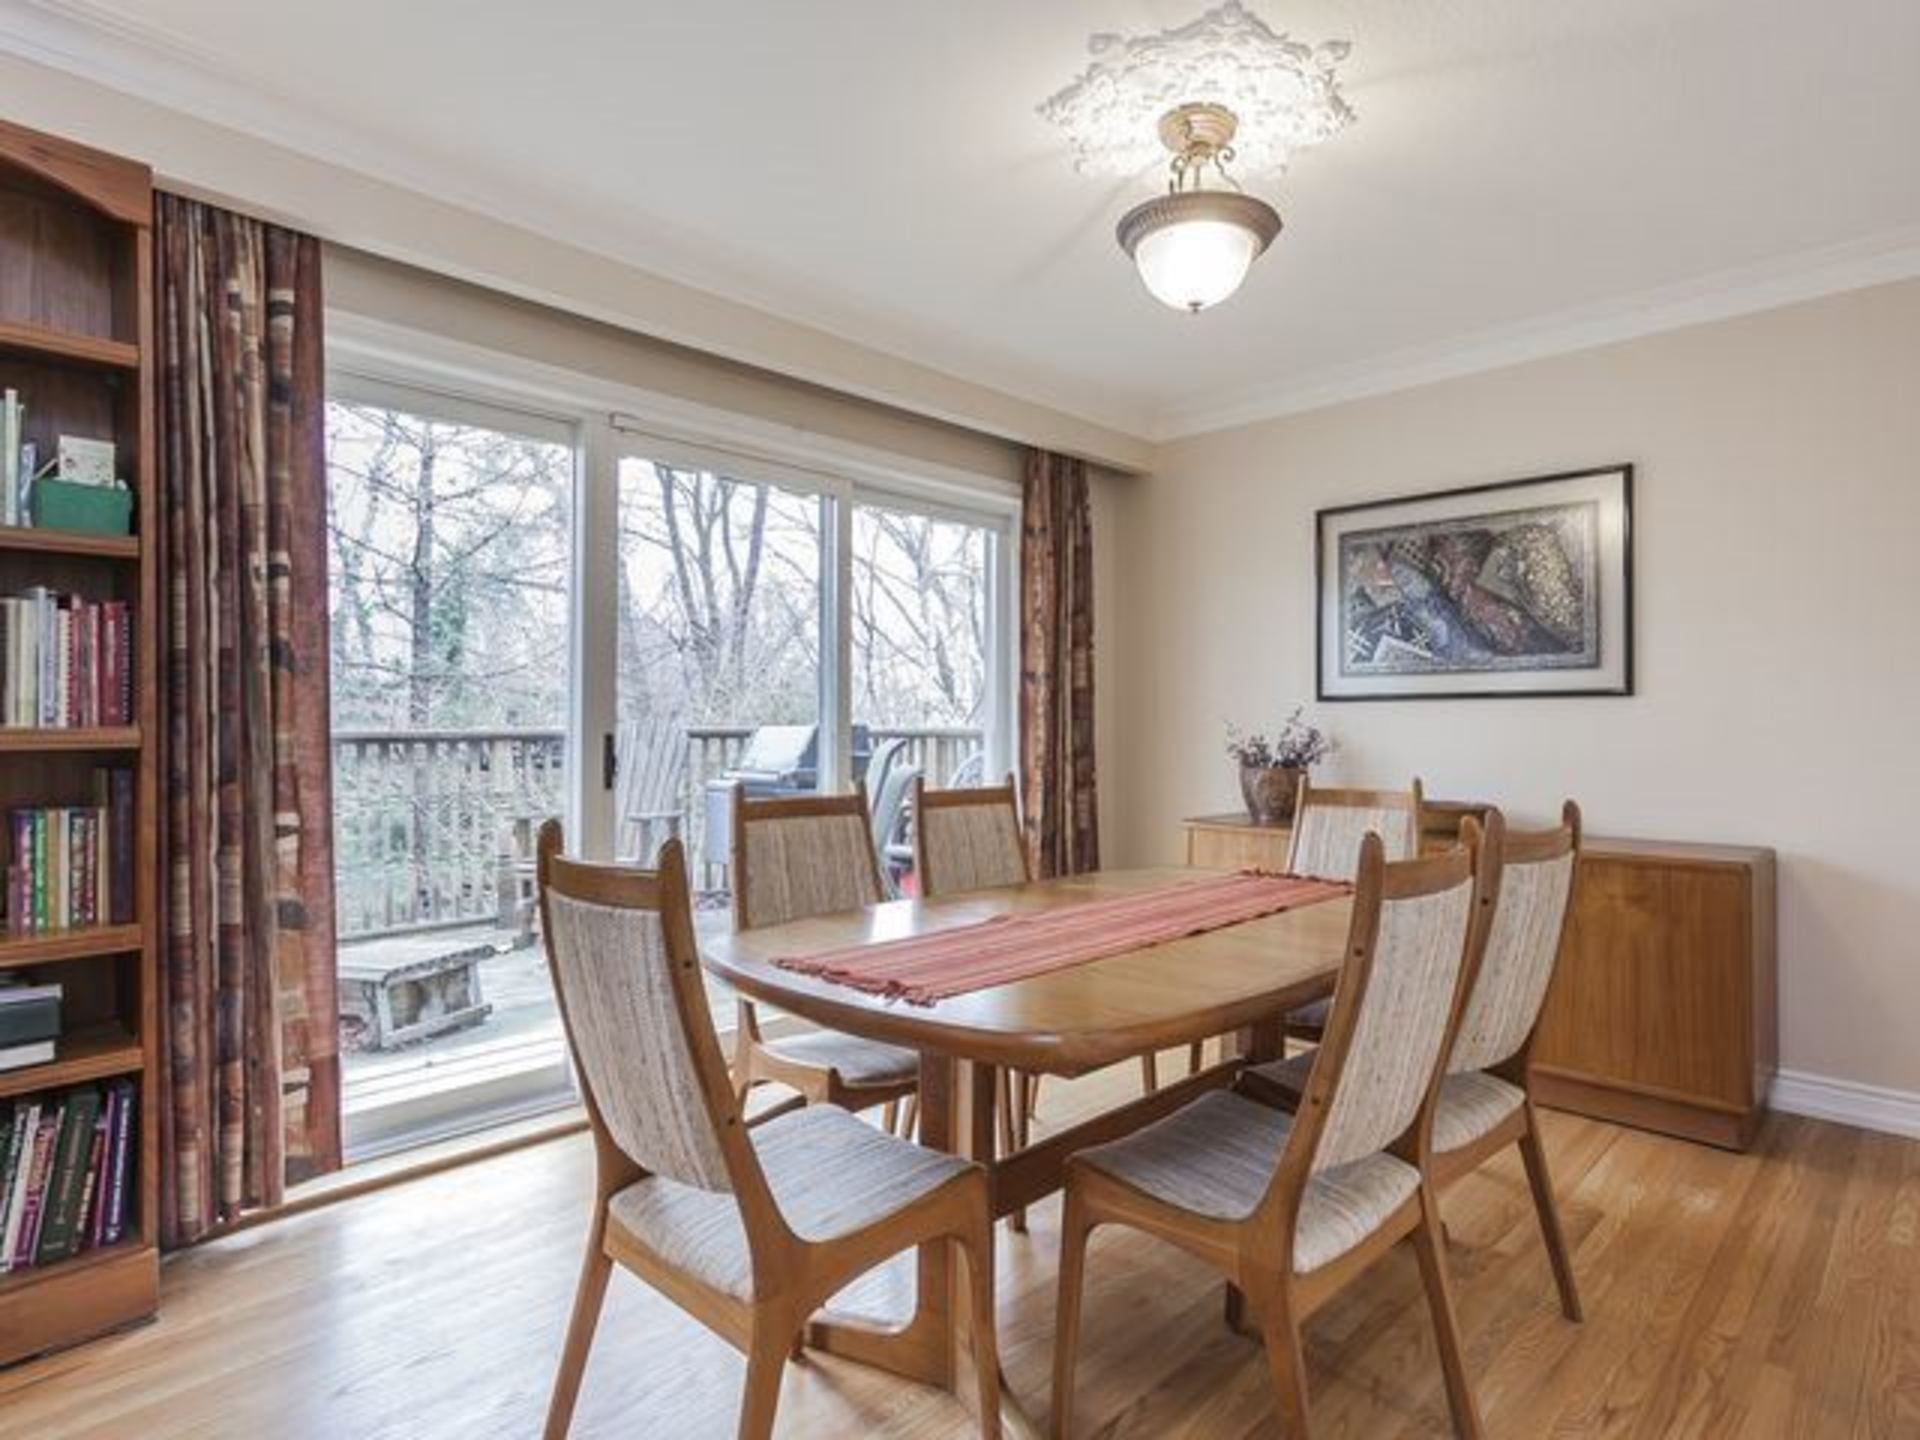 77 at SALE #454 - 53 Sumner Heights Drive, Bayview Village, Toronto